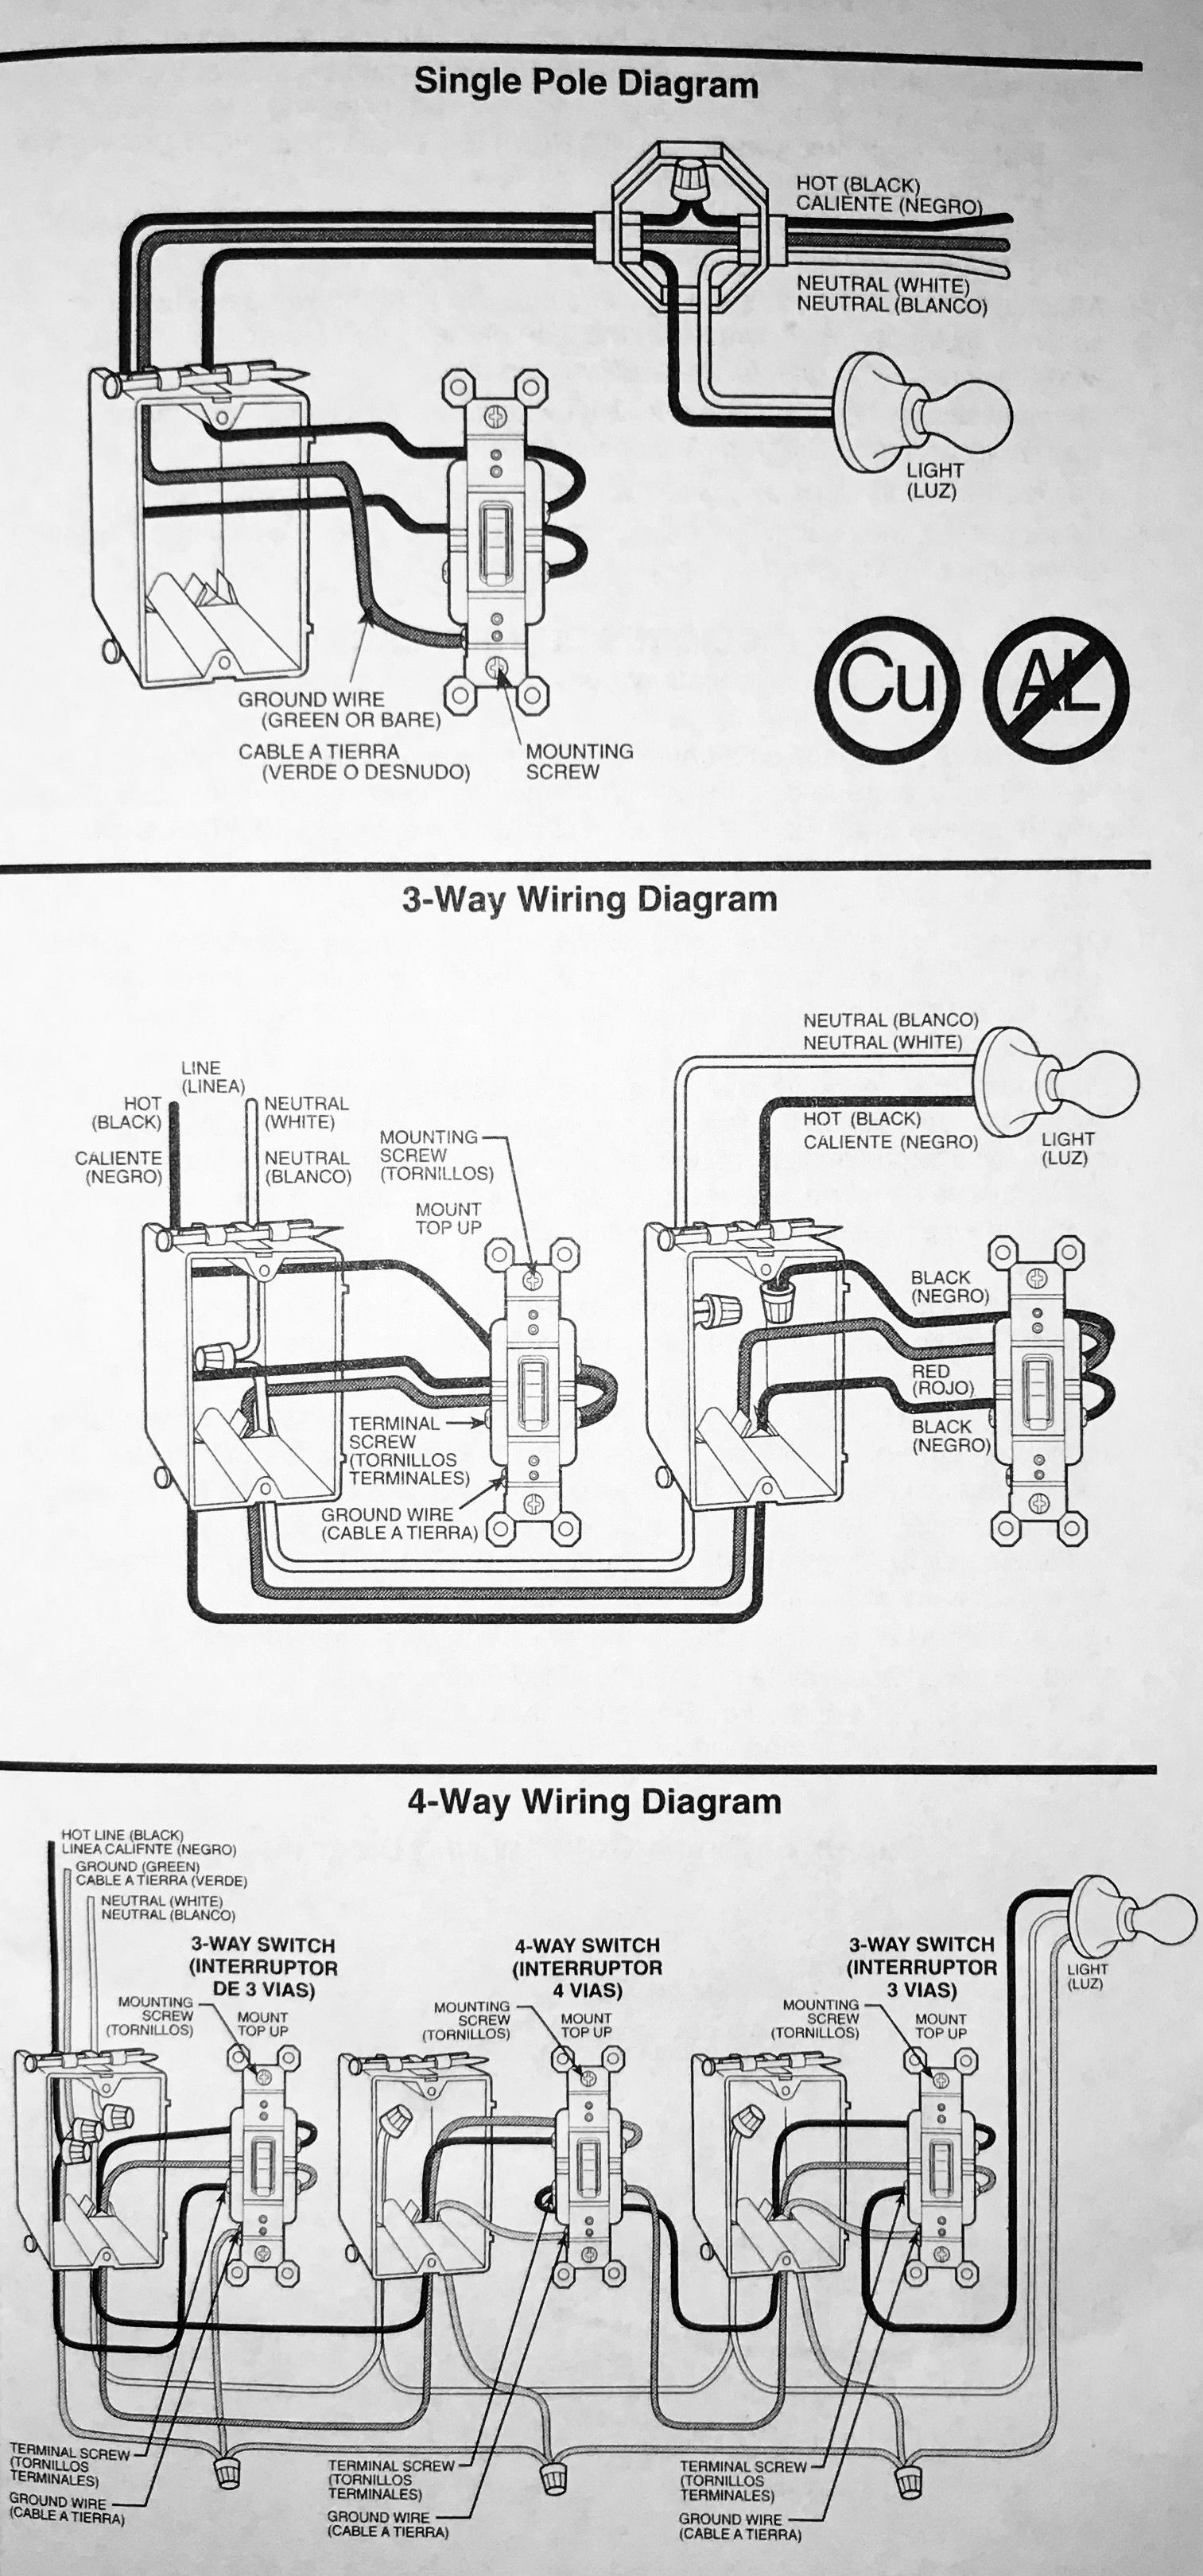 single pole wire diagram universal wiring diagram single pole duplex switch wiring diagram [ 1513 x 3239 Pixel ]